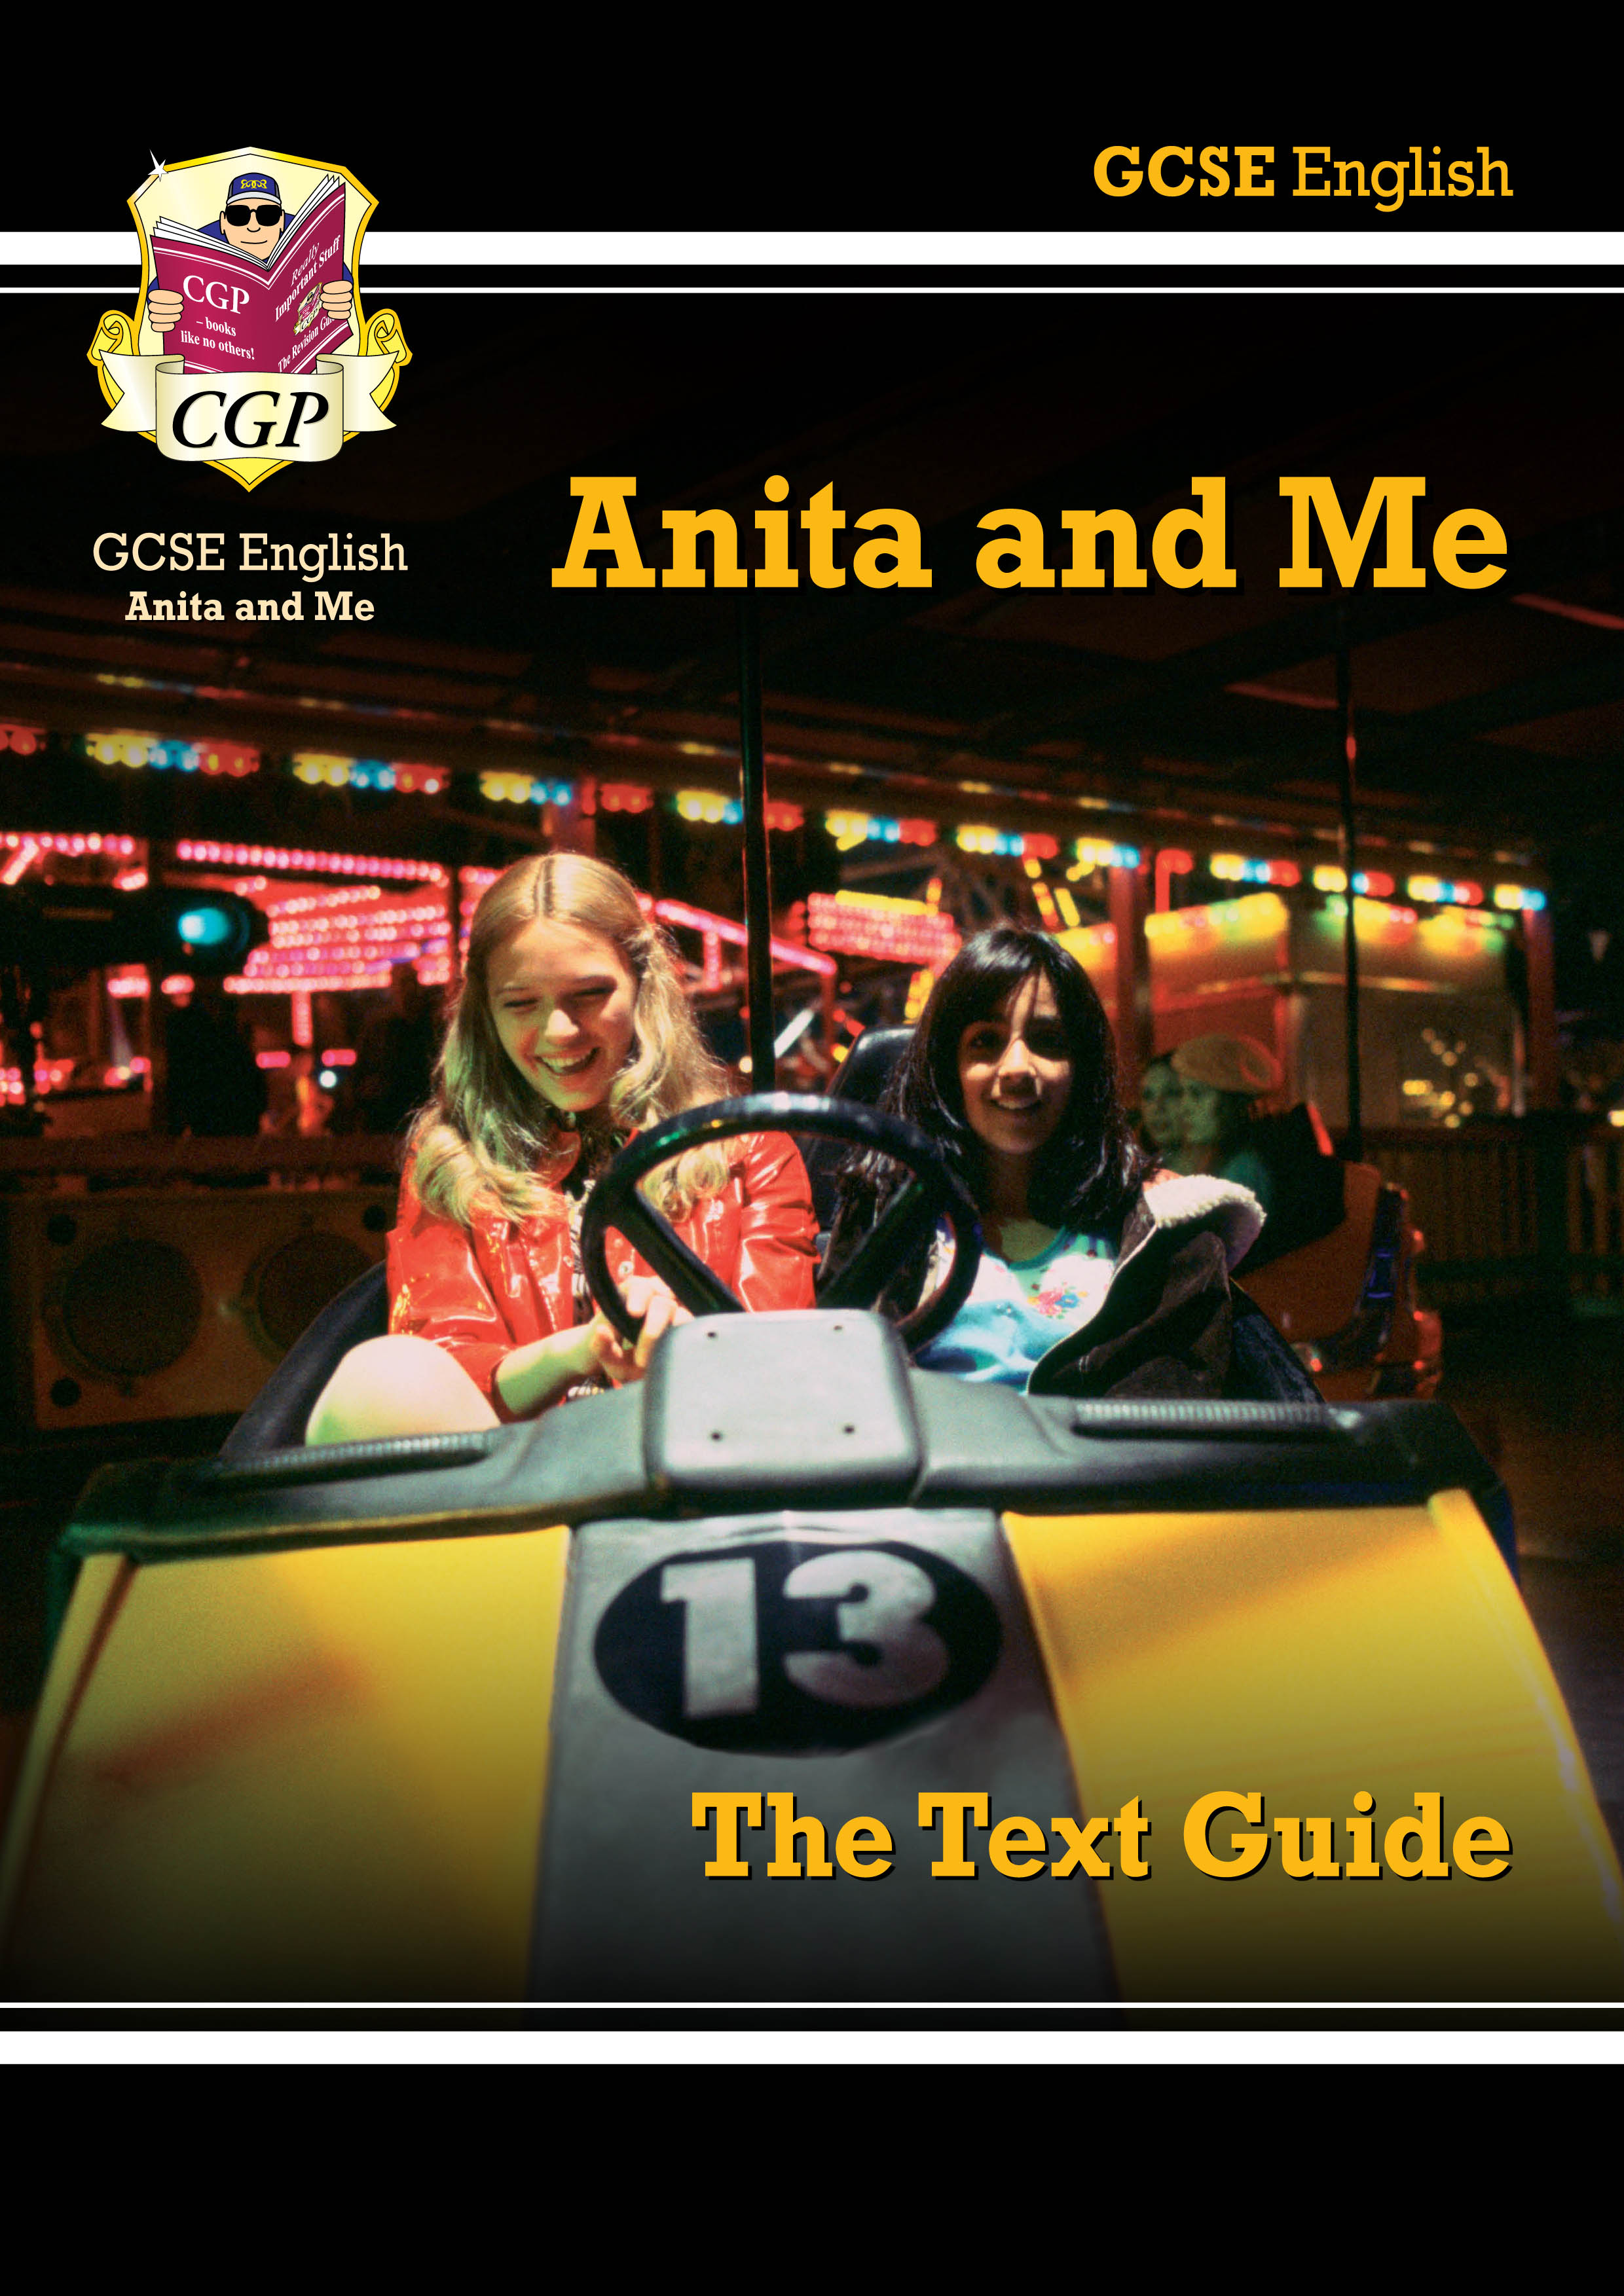 ETAM41DK - Grade 9-1 GCSE English Text Guide - Anita and Me